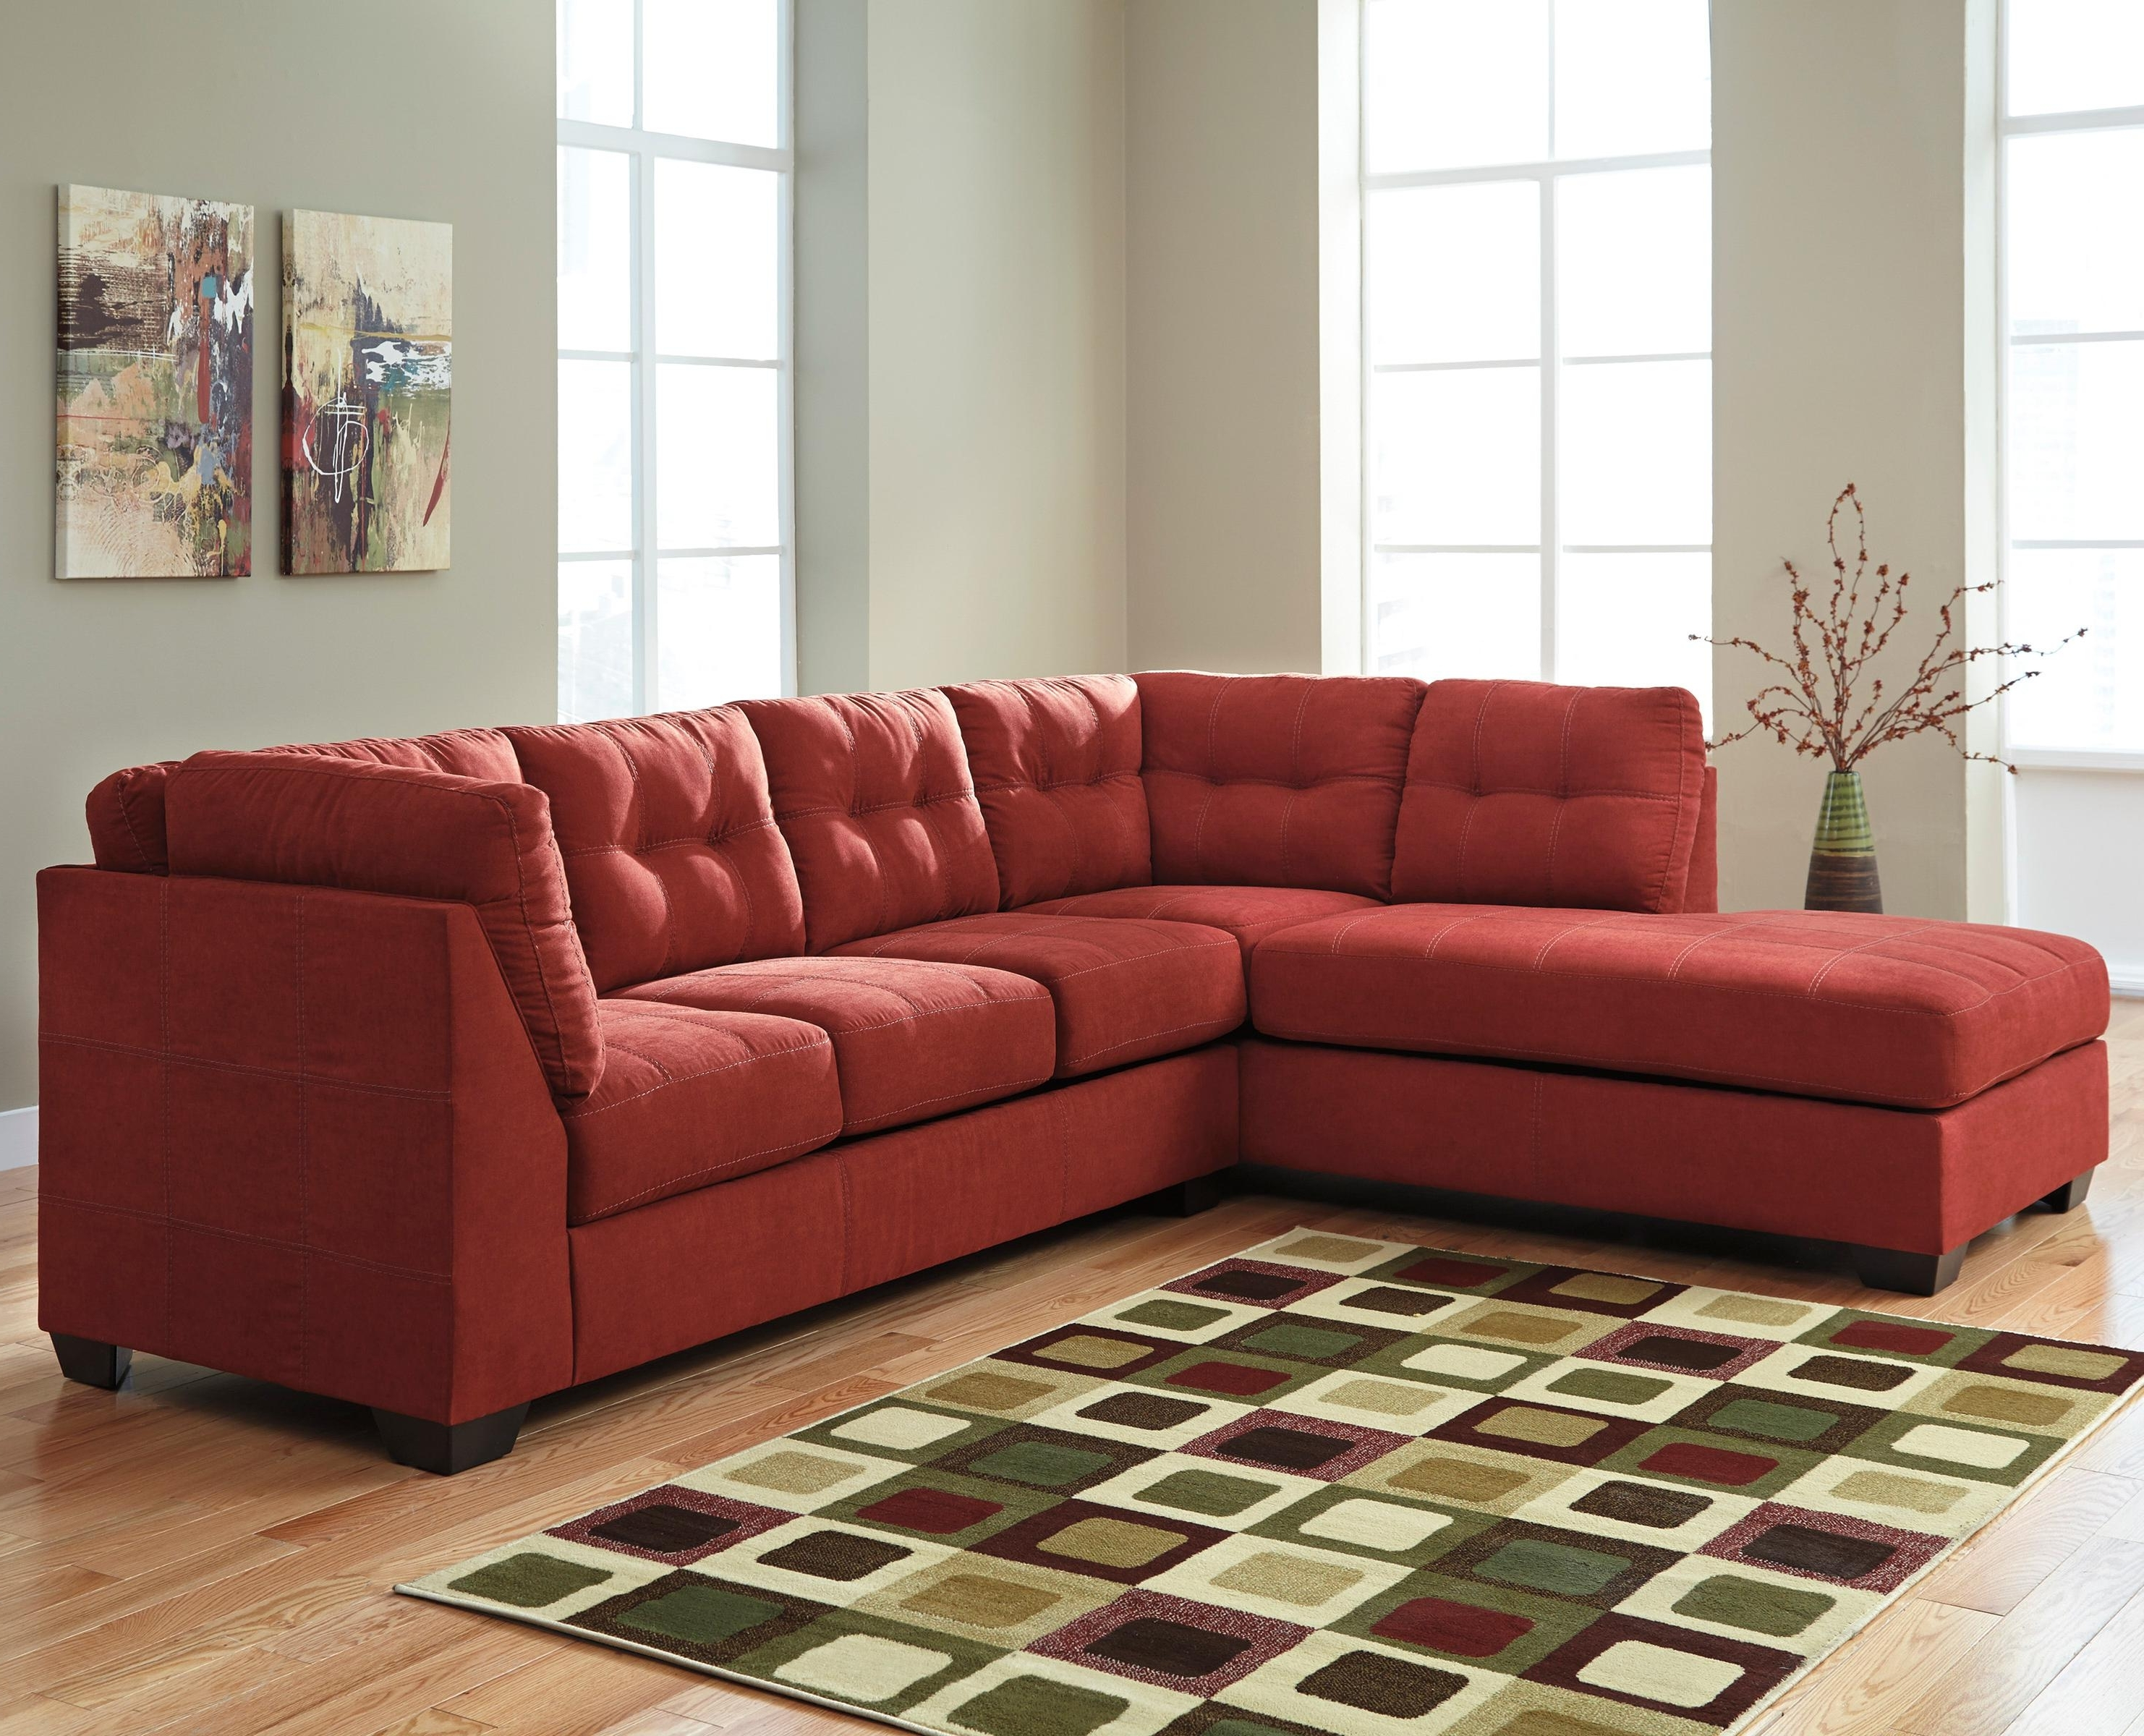 Wolf And Pertaining To Popular Left Chaise Sectionals (View 14 of 15)